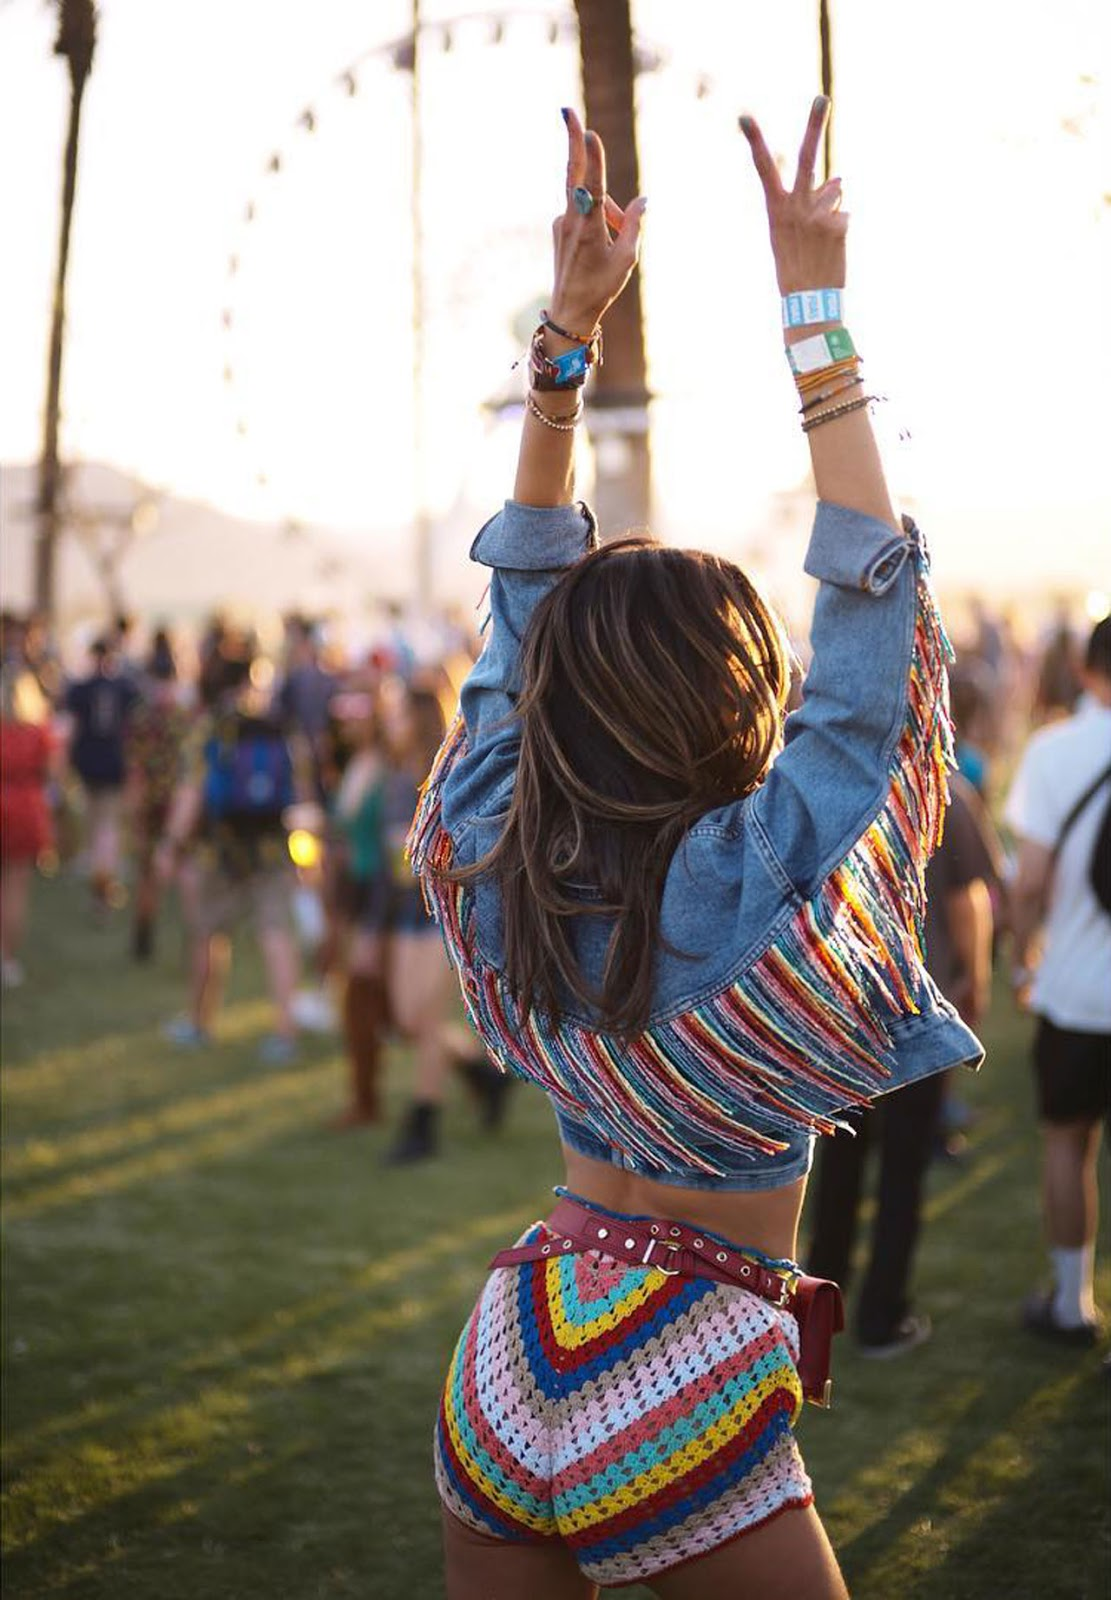 Crochet at Coachella